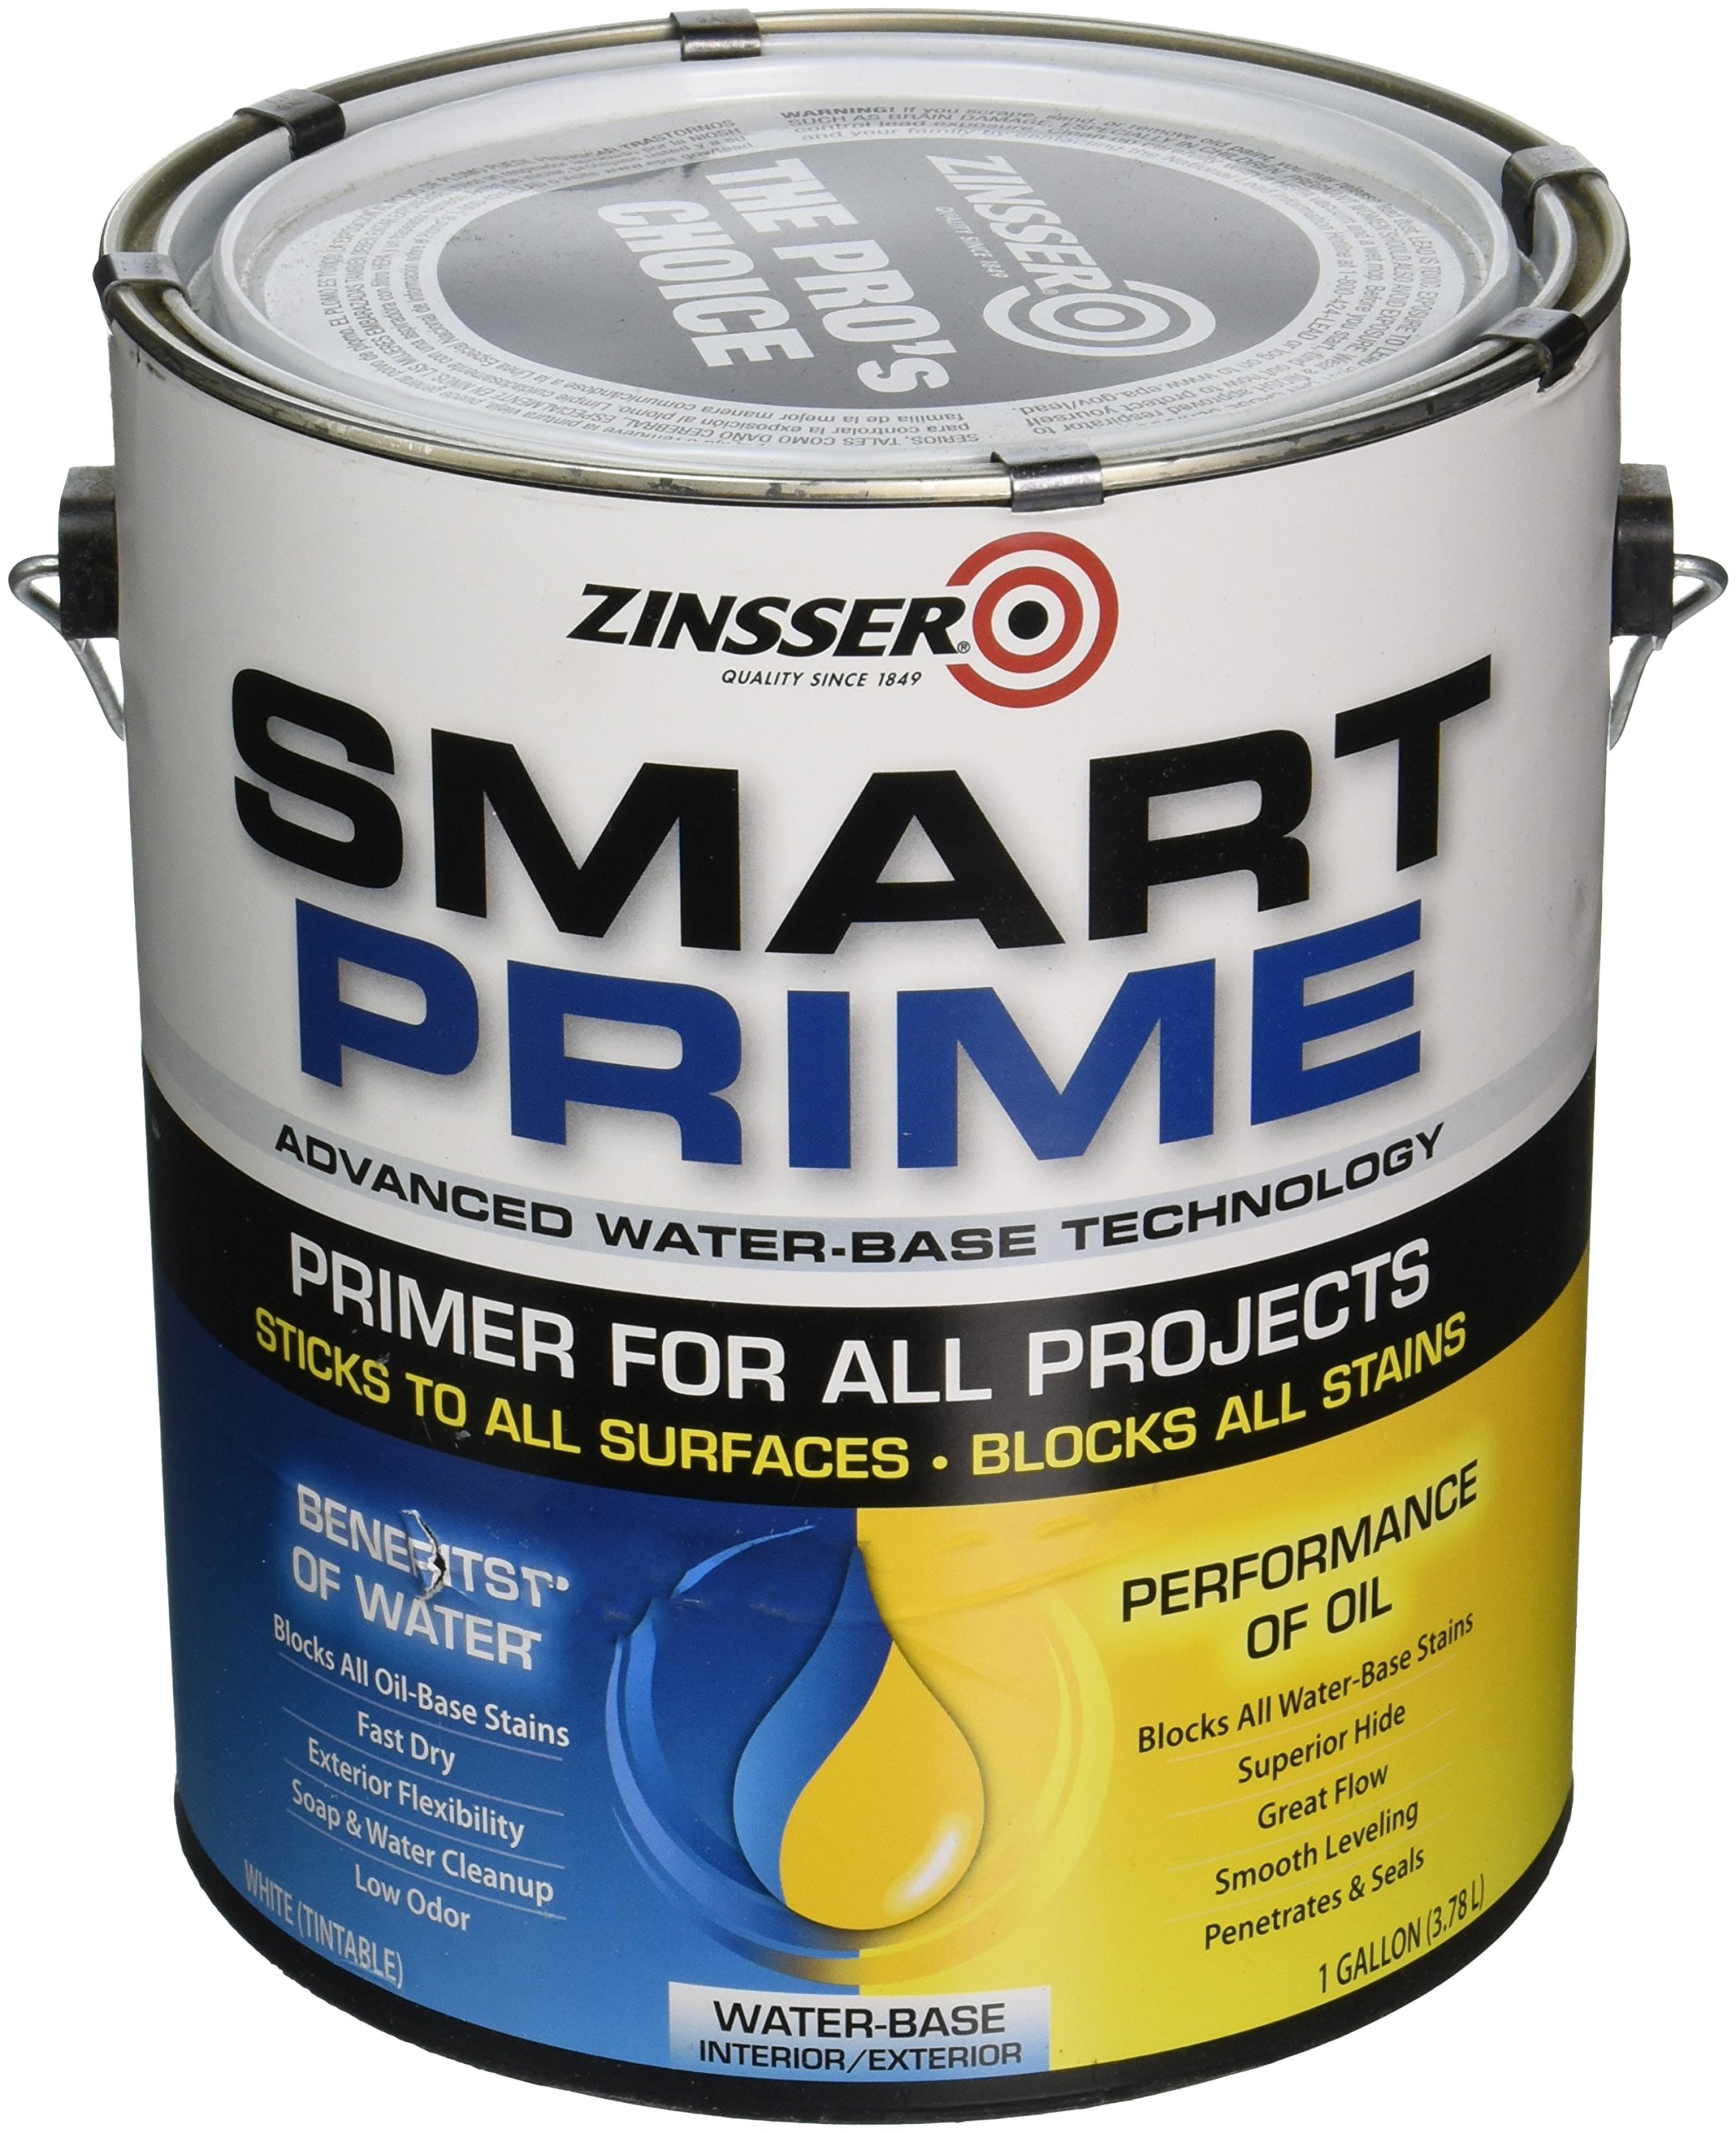 Rust-Oleum 249729 Smart Prime Primer, 1-Gallon, White